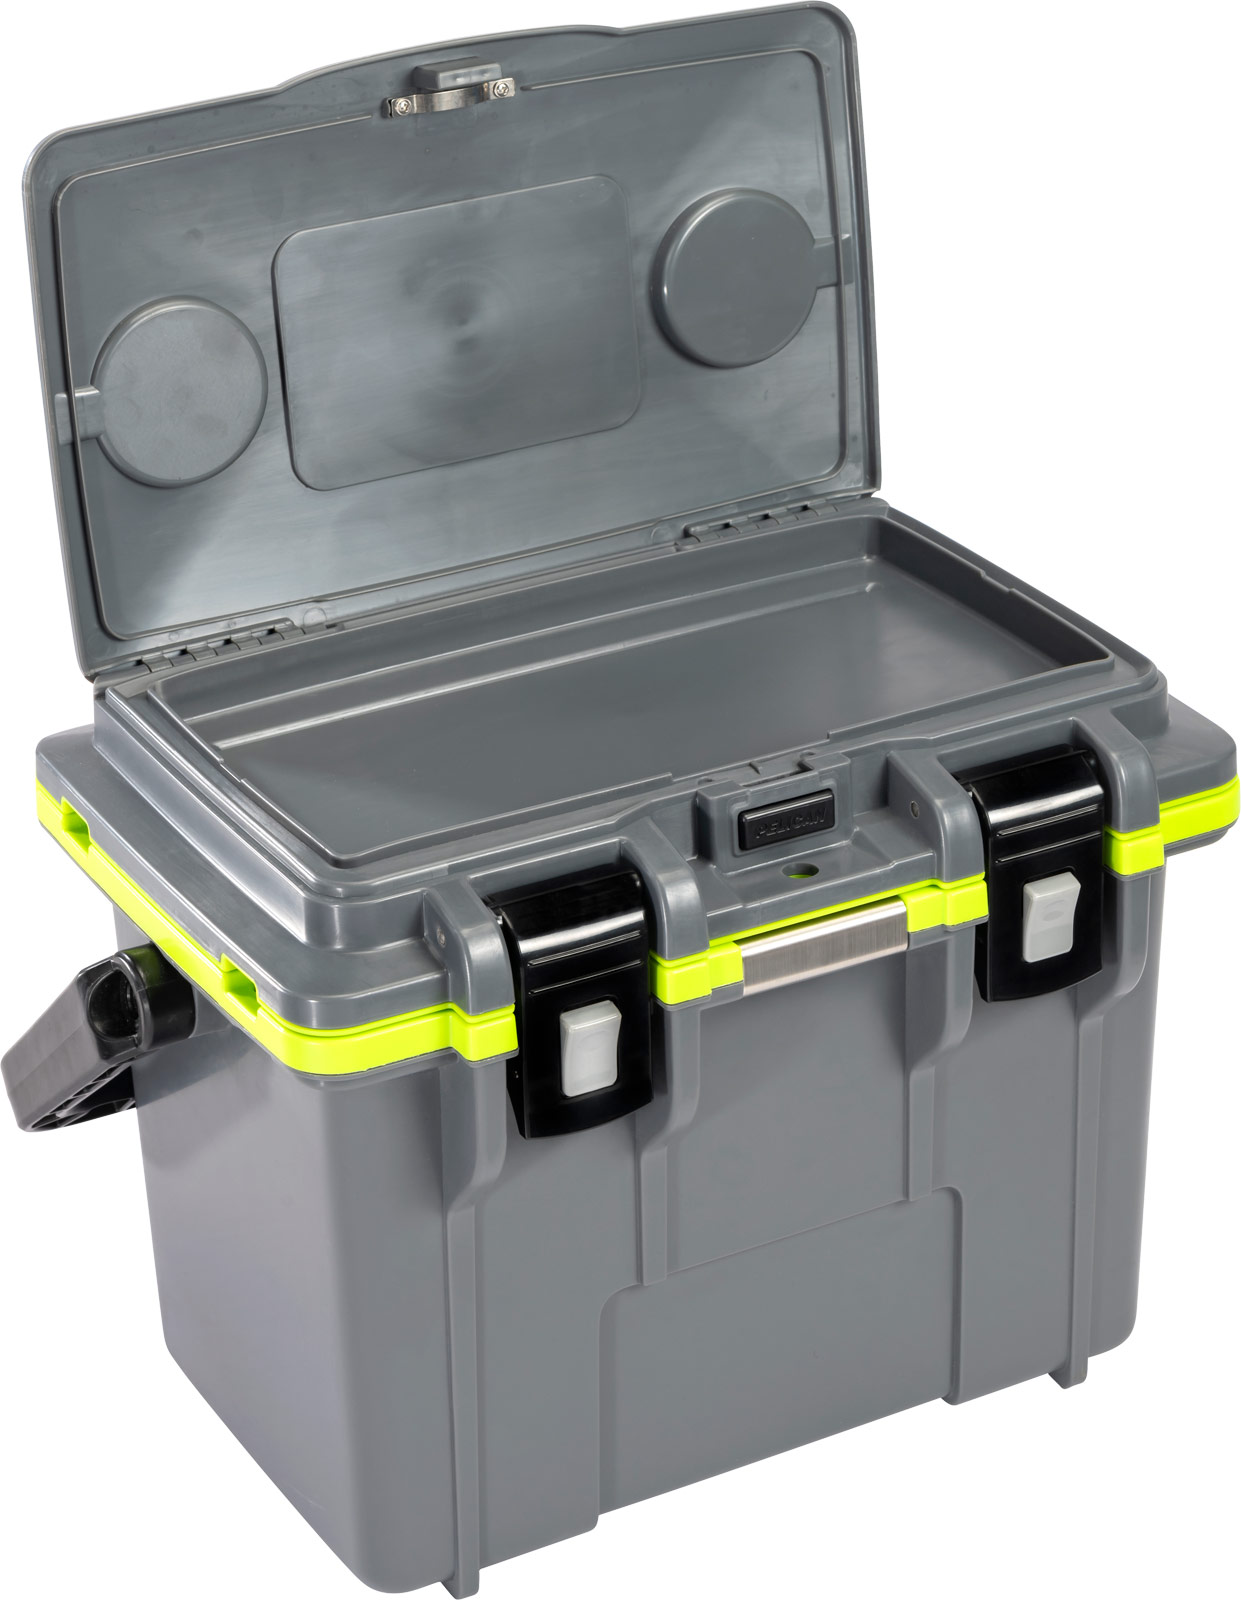 pelican personal cooler 14qt grey green